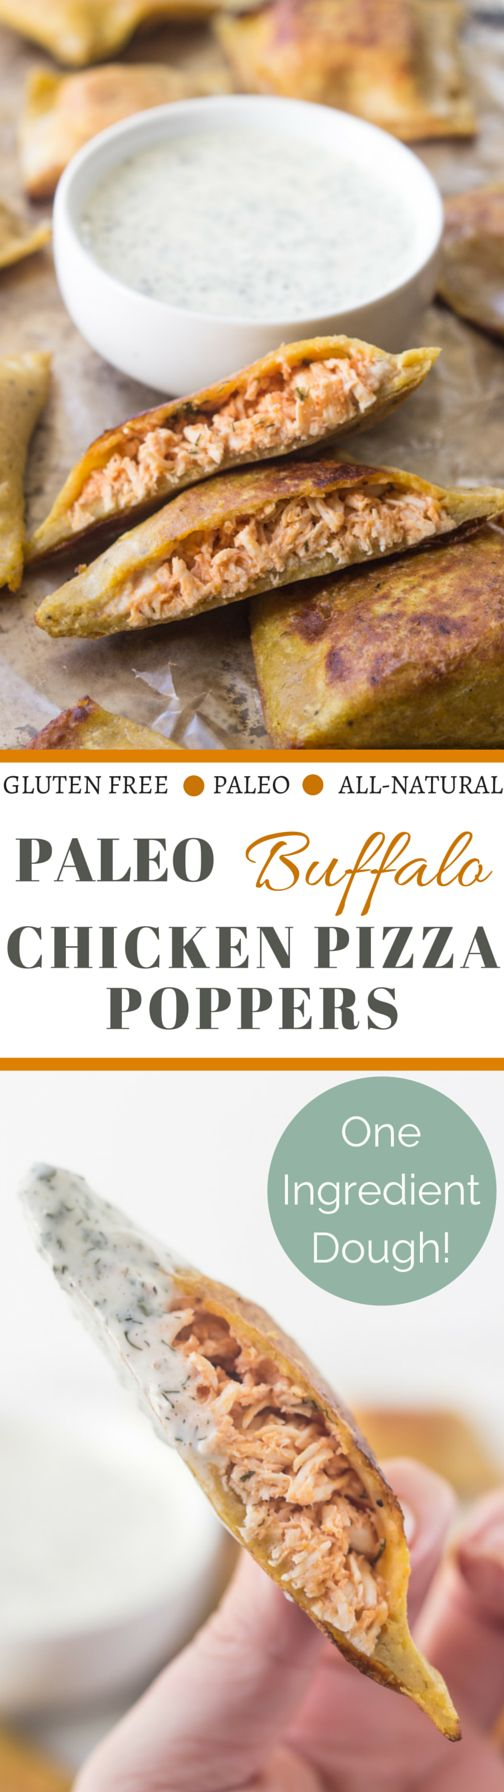 Paleo Buffalo Chicken Pizza Poppers – one ingredient dough!  Plus they're served with a ridiculously good